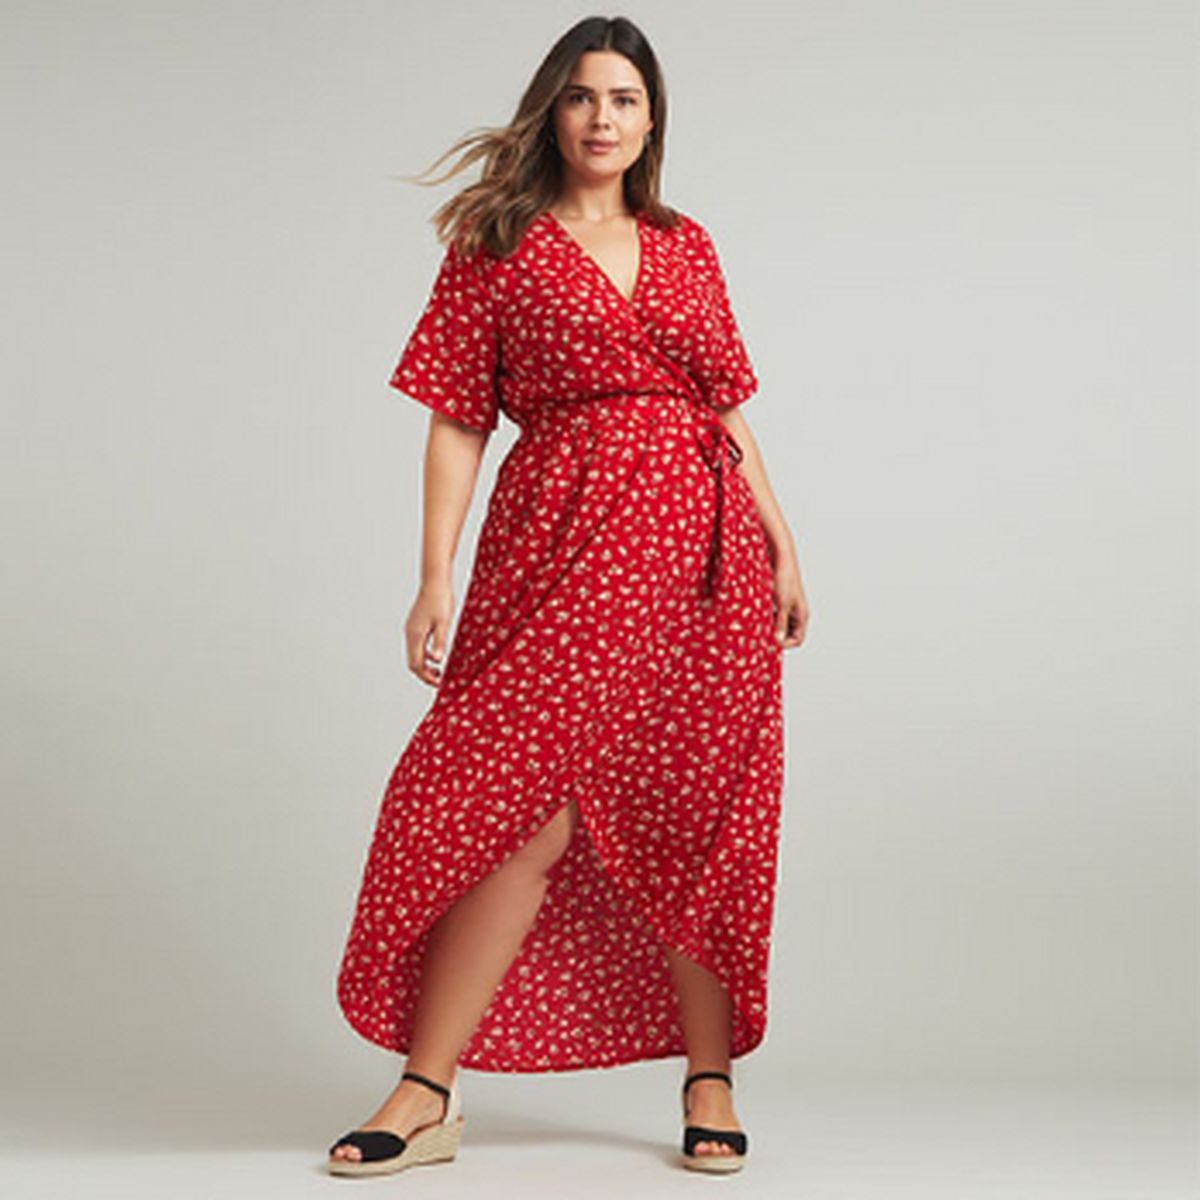 cd1147199286 Women's Clothes | Women's Clothing & Fashion Online | New Look